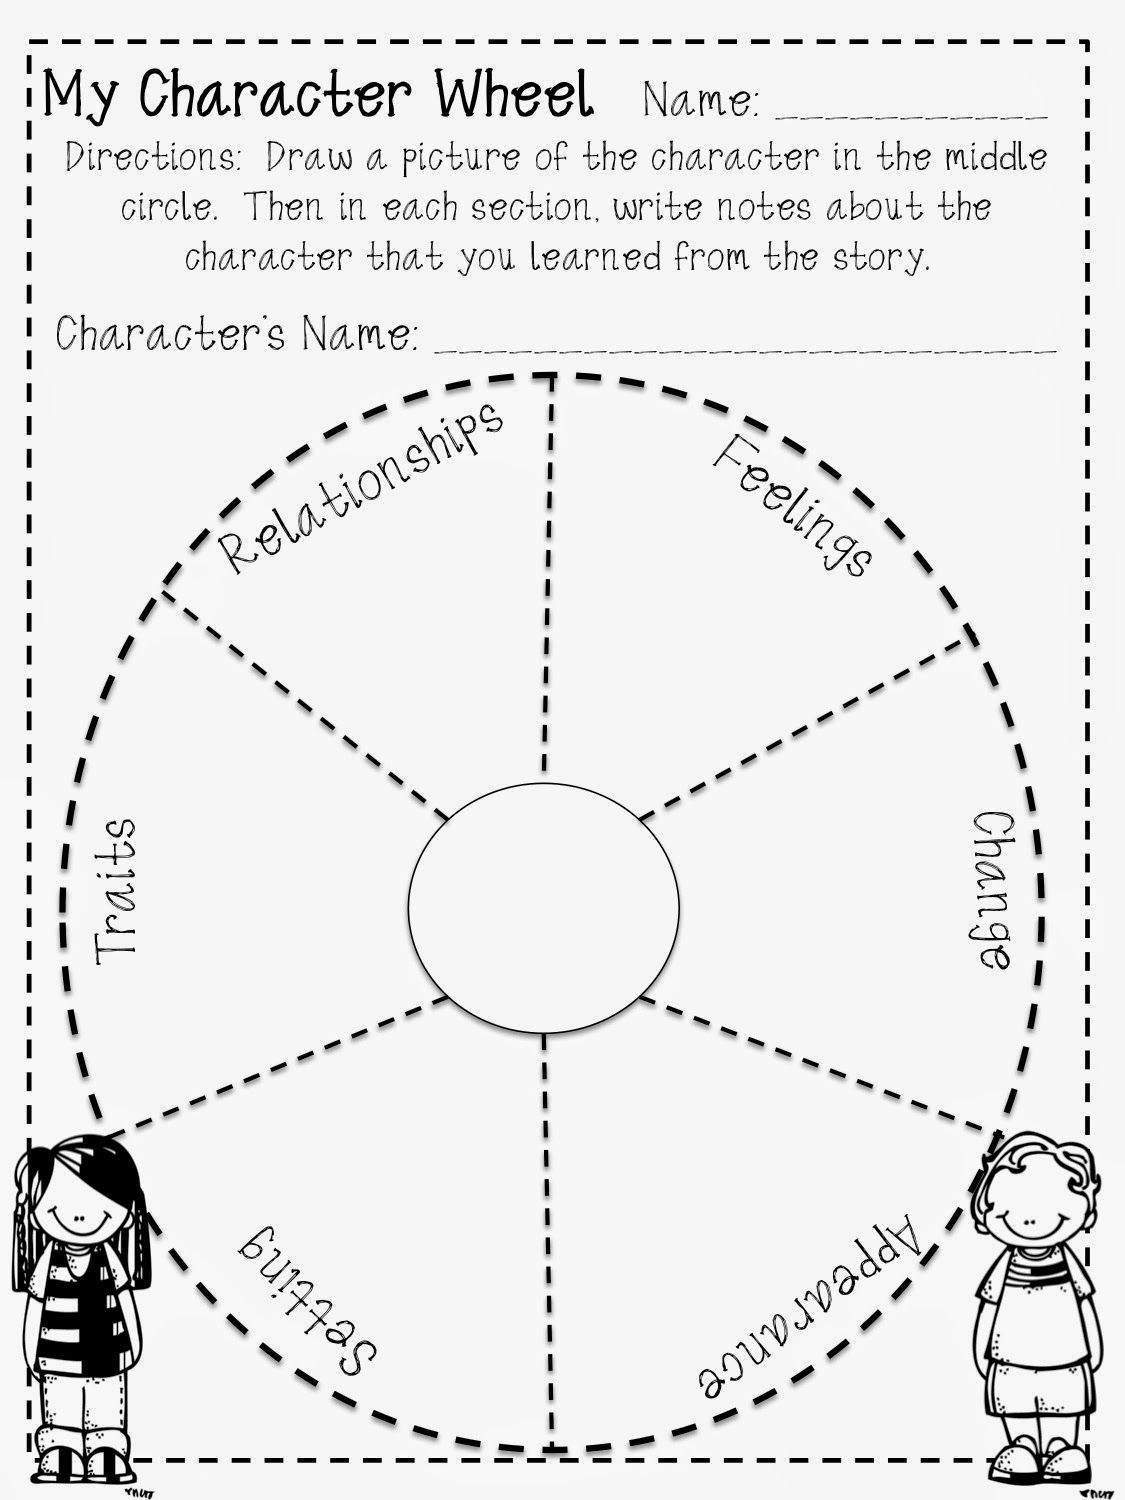 Reading Character Wheel Freebie   Reading classroom [ 1500 x 1125 Pixel ]